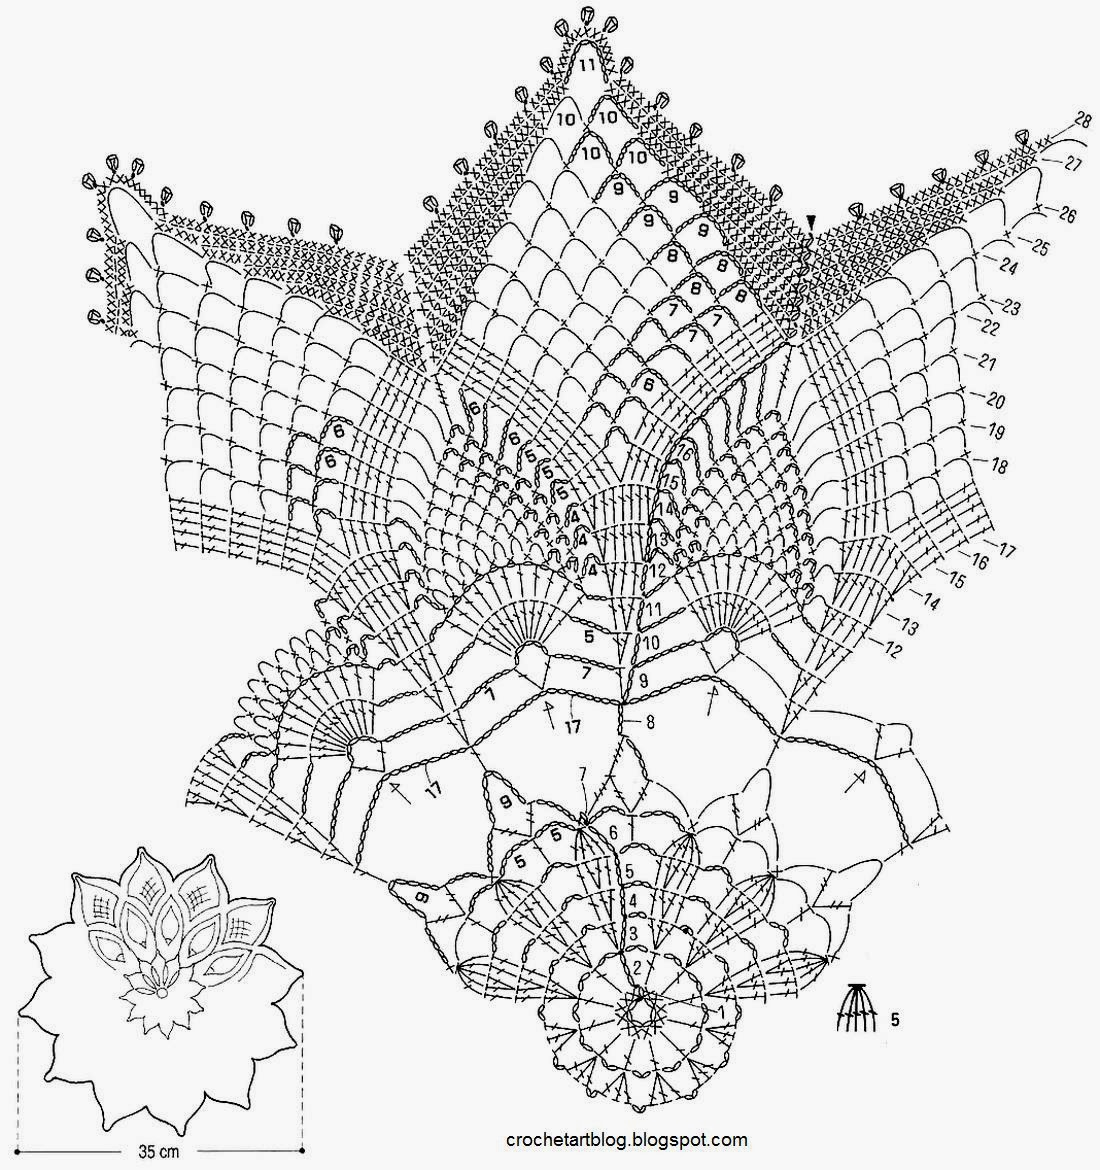 The Best Free Crochet Drawing Images Download From 124